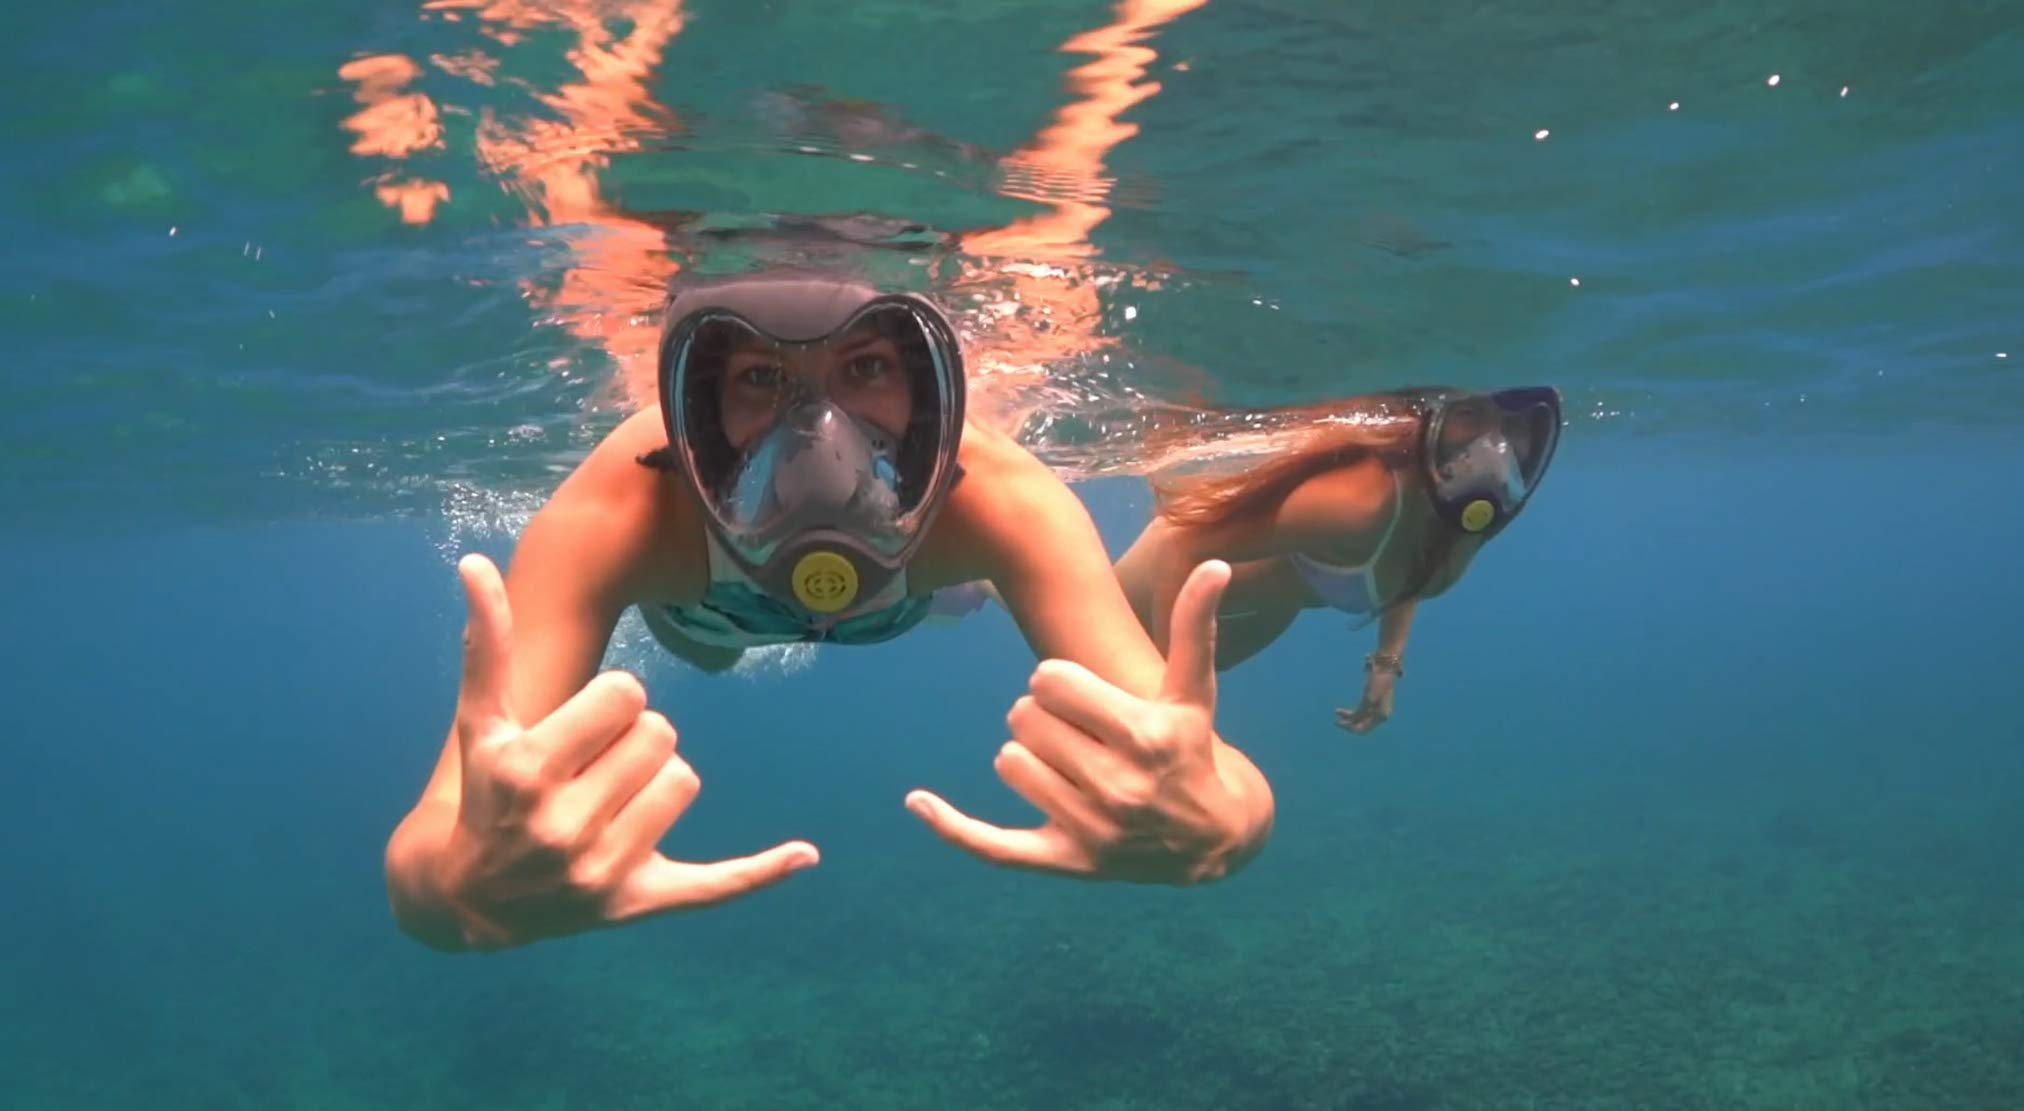 Batu Sight Full Face Snorkel Mask Natural Breath and Anti-Fog & Anti-Leak System with 180 Degrees Panoramic View - Underwater Camera Compatible for Adults and Kids with Complementary Beach Mat